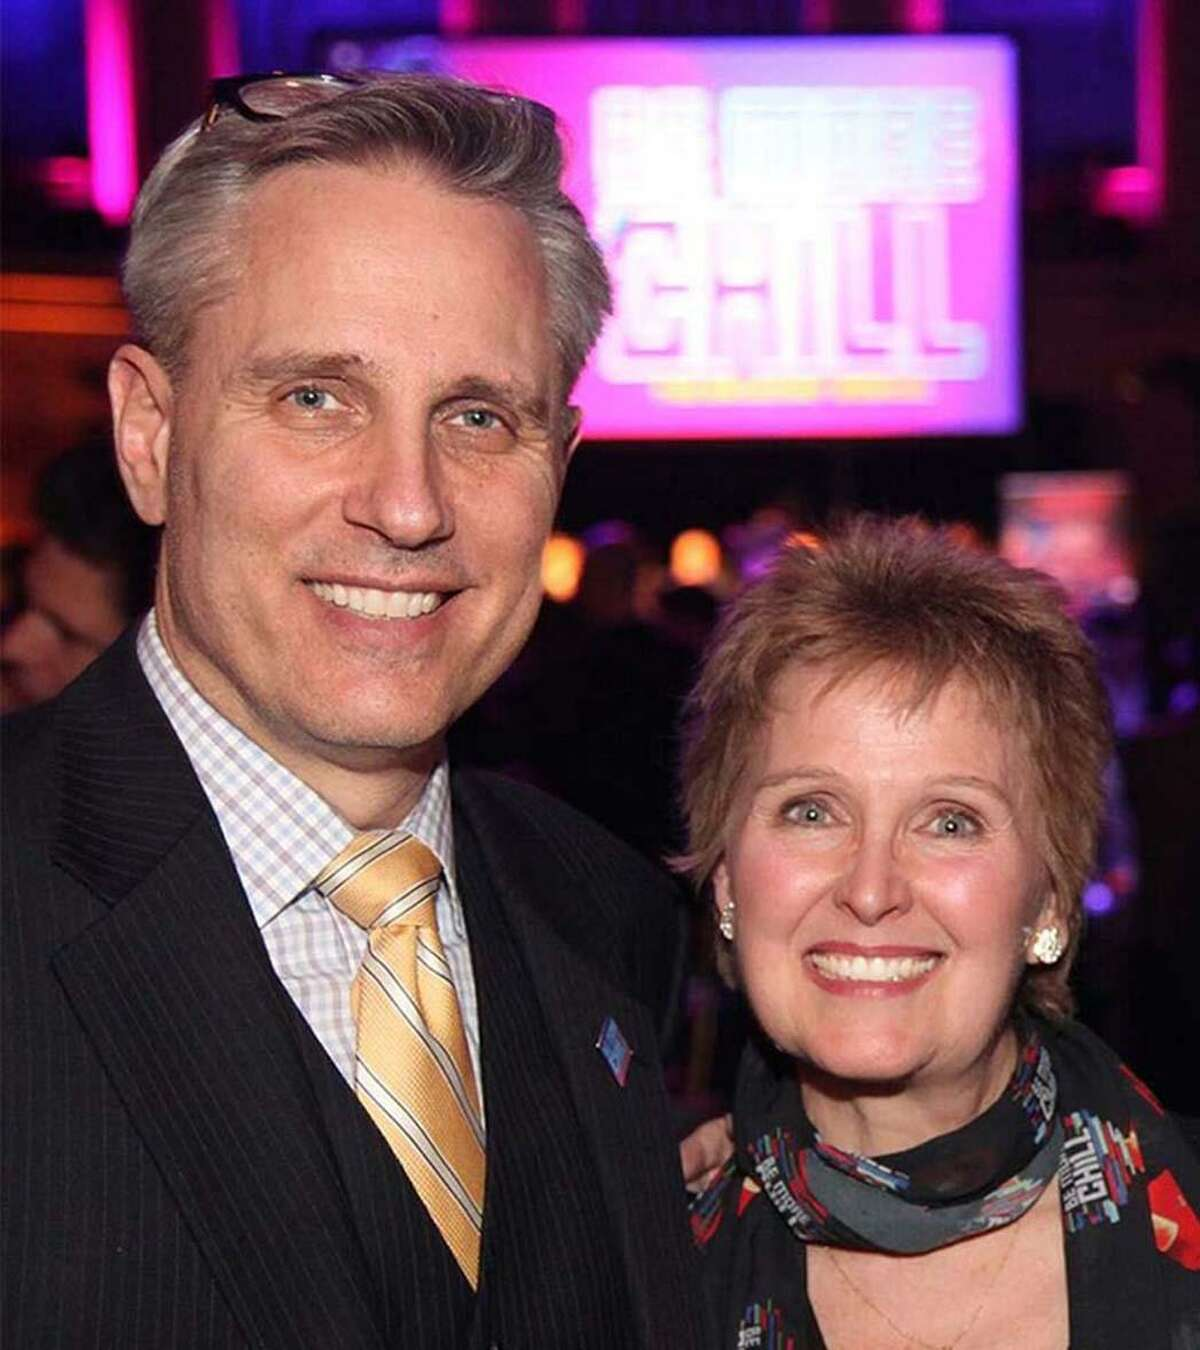 Essex residents Patty Carver, left, a professional singer and actor, and her husband, Broadway producer Gerald Goehring, said they started Saltbox TV to serve an under-represented demographic when it comes to streaming services.